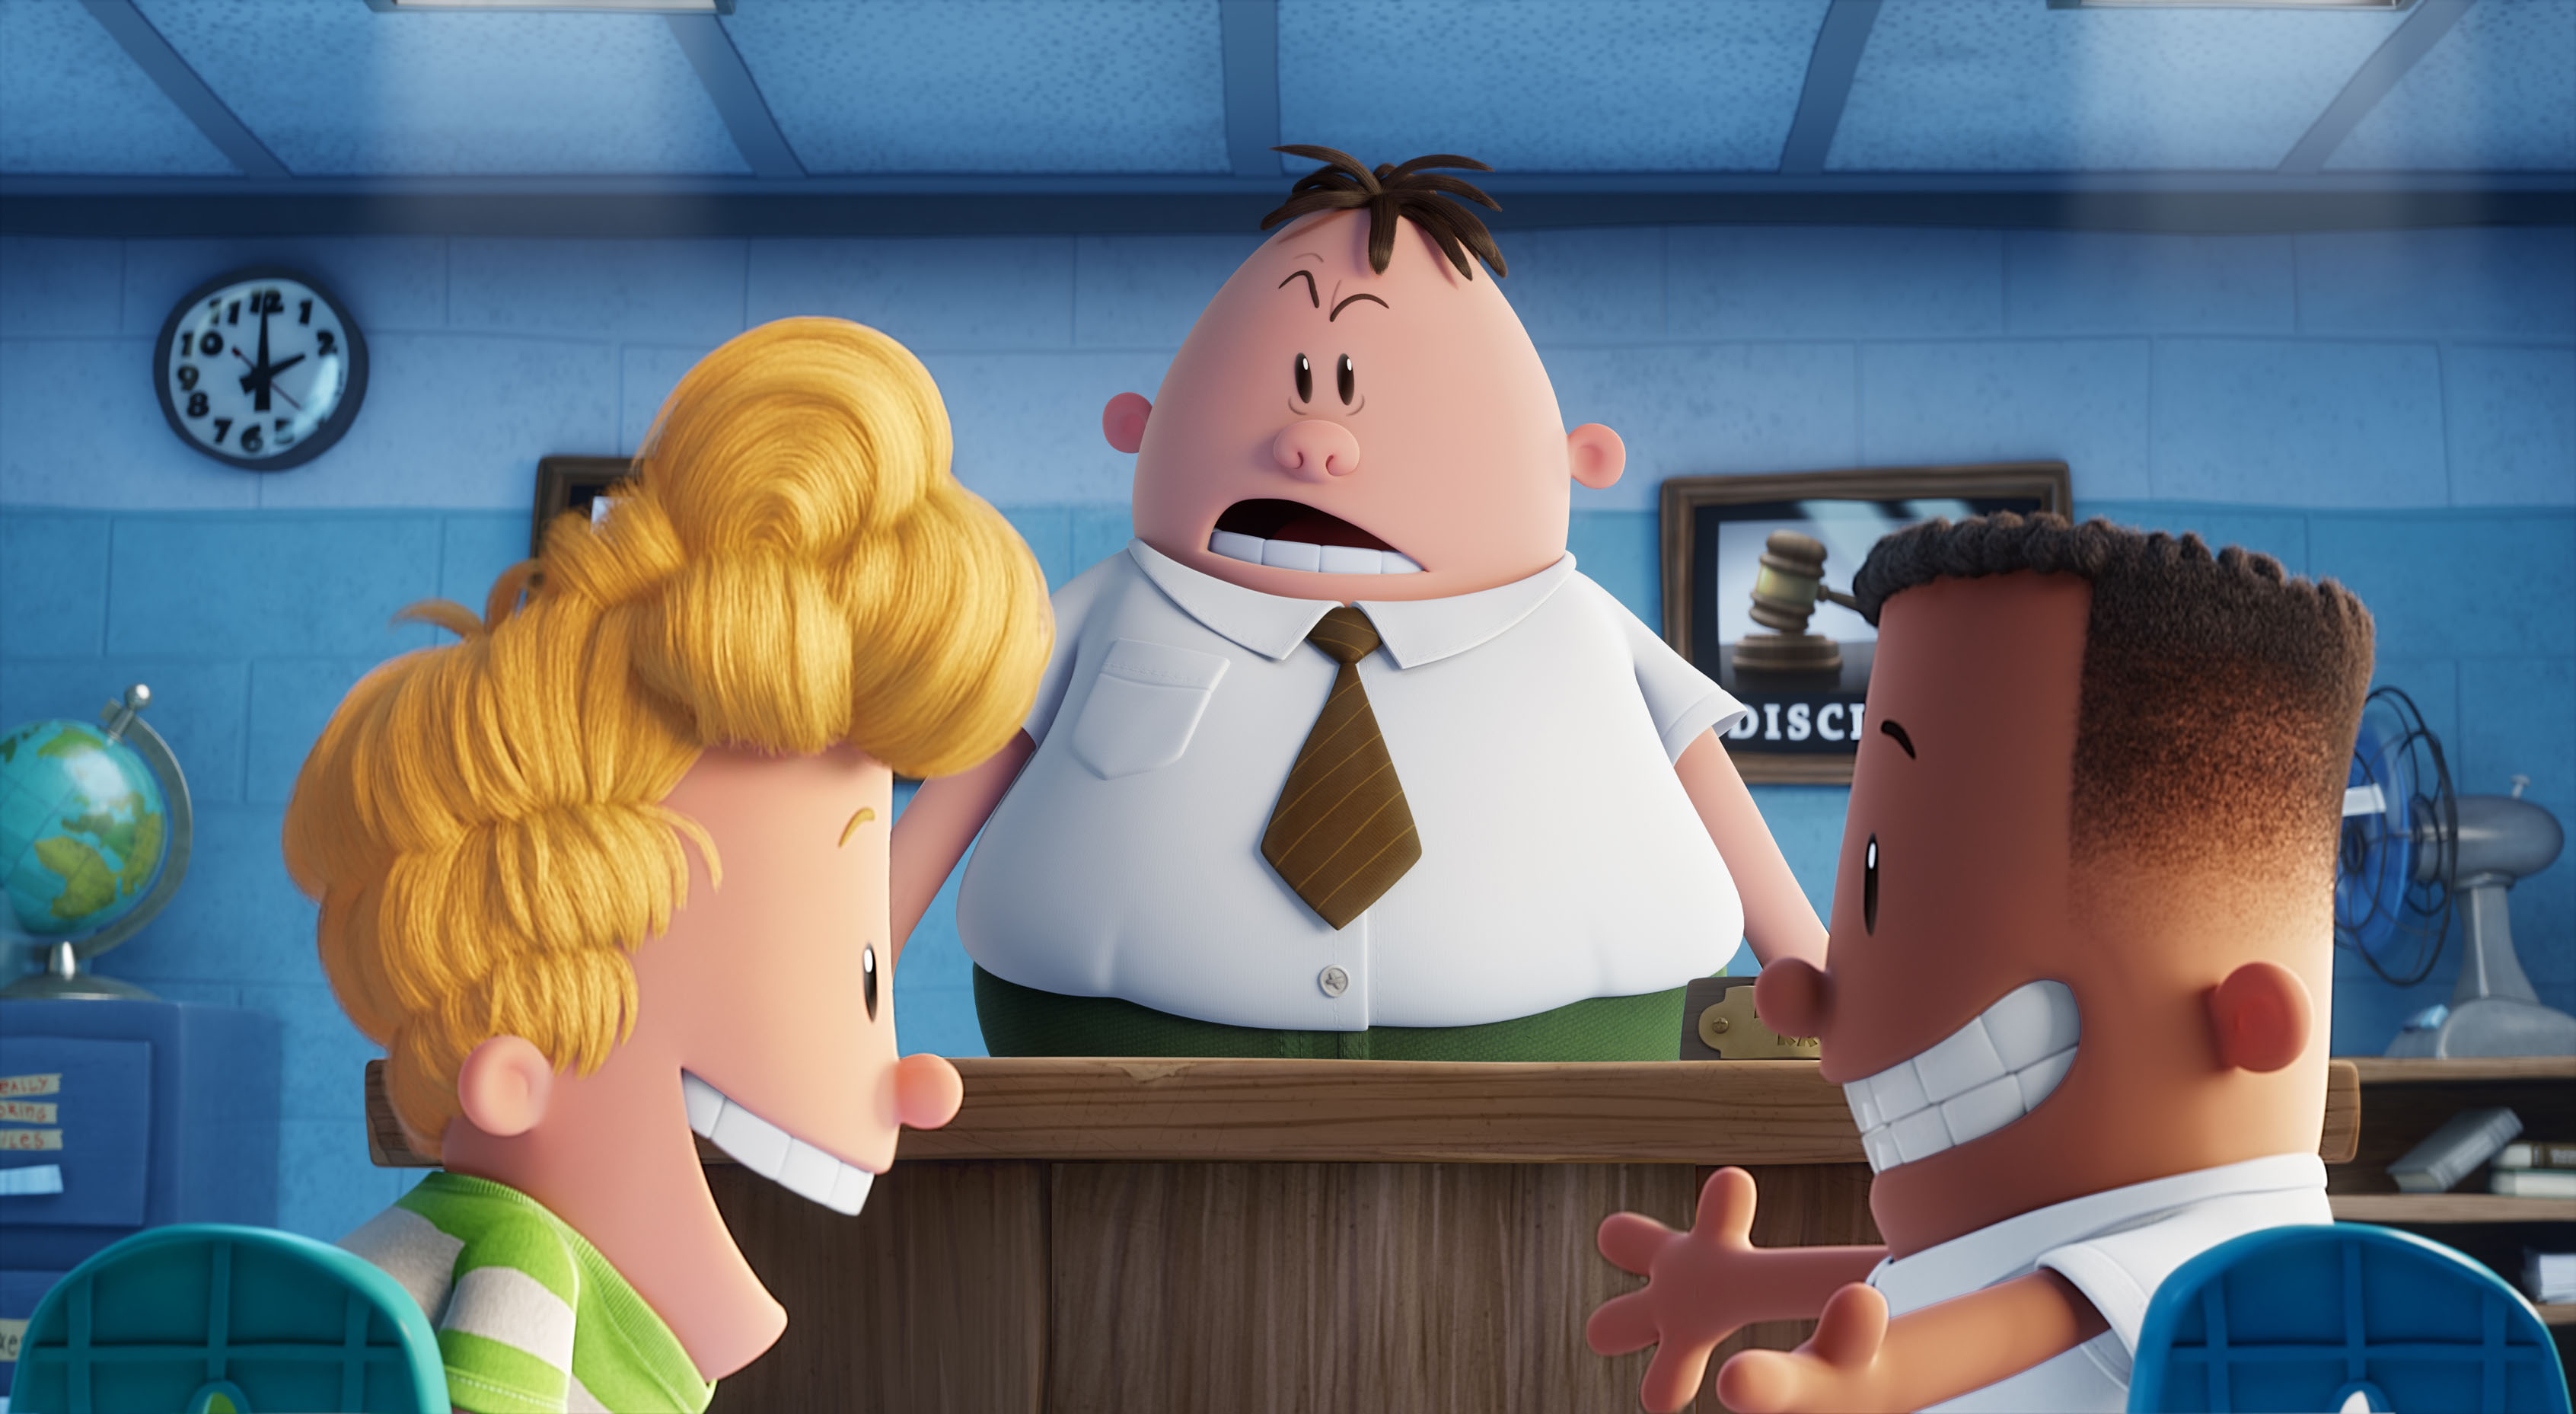 5 Captain Underpants The First Epic Movie Quotes You Need To Read My Teen Guide